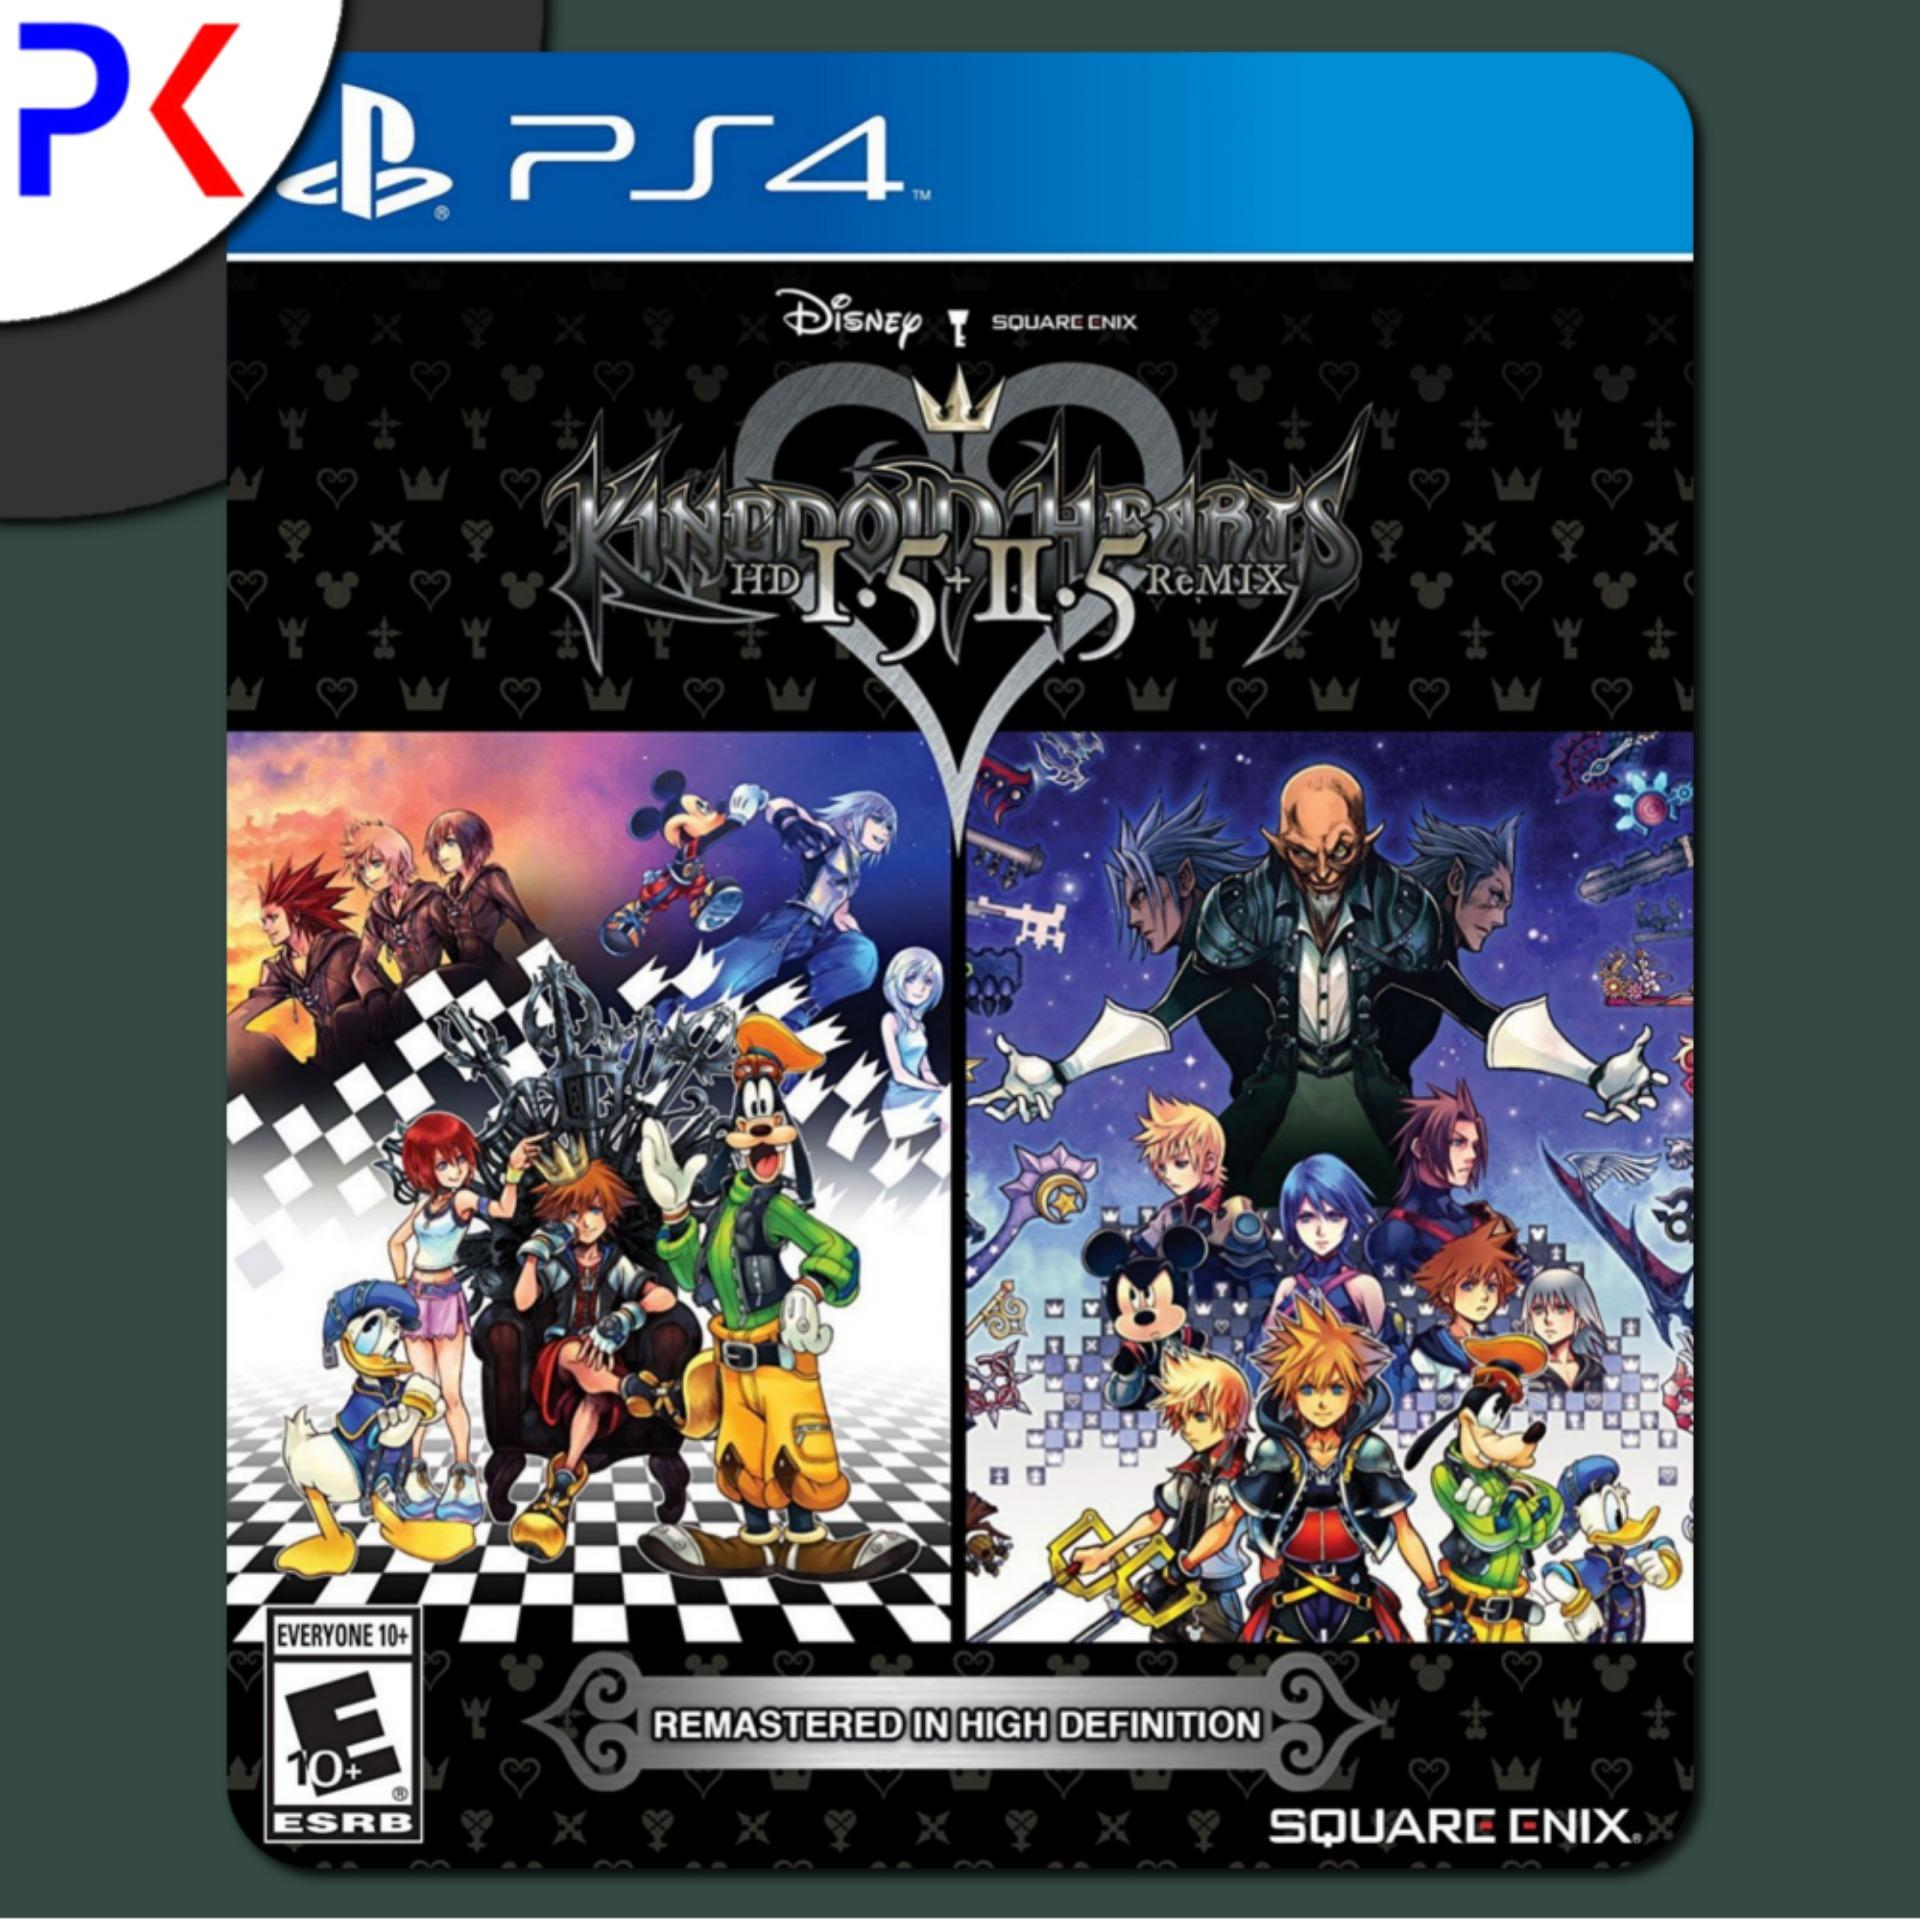 PS4 Kingdom Hearts HD I.5 + II.5 Remix (R1)